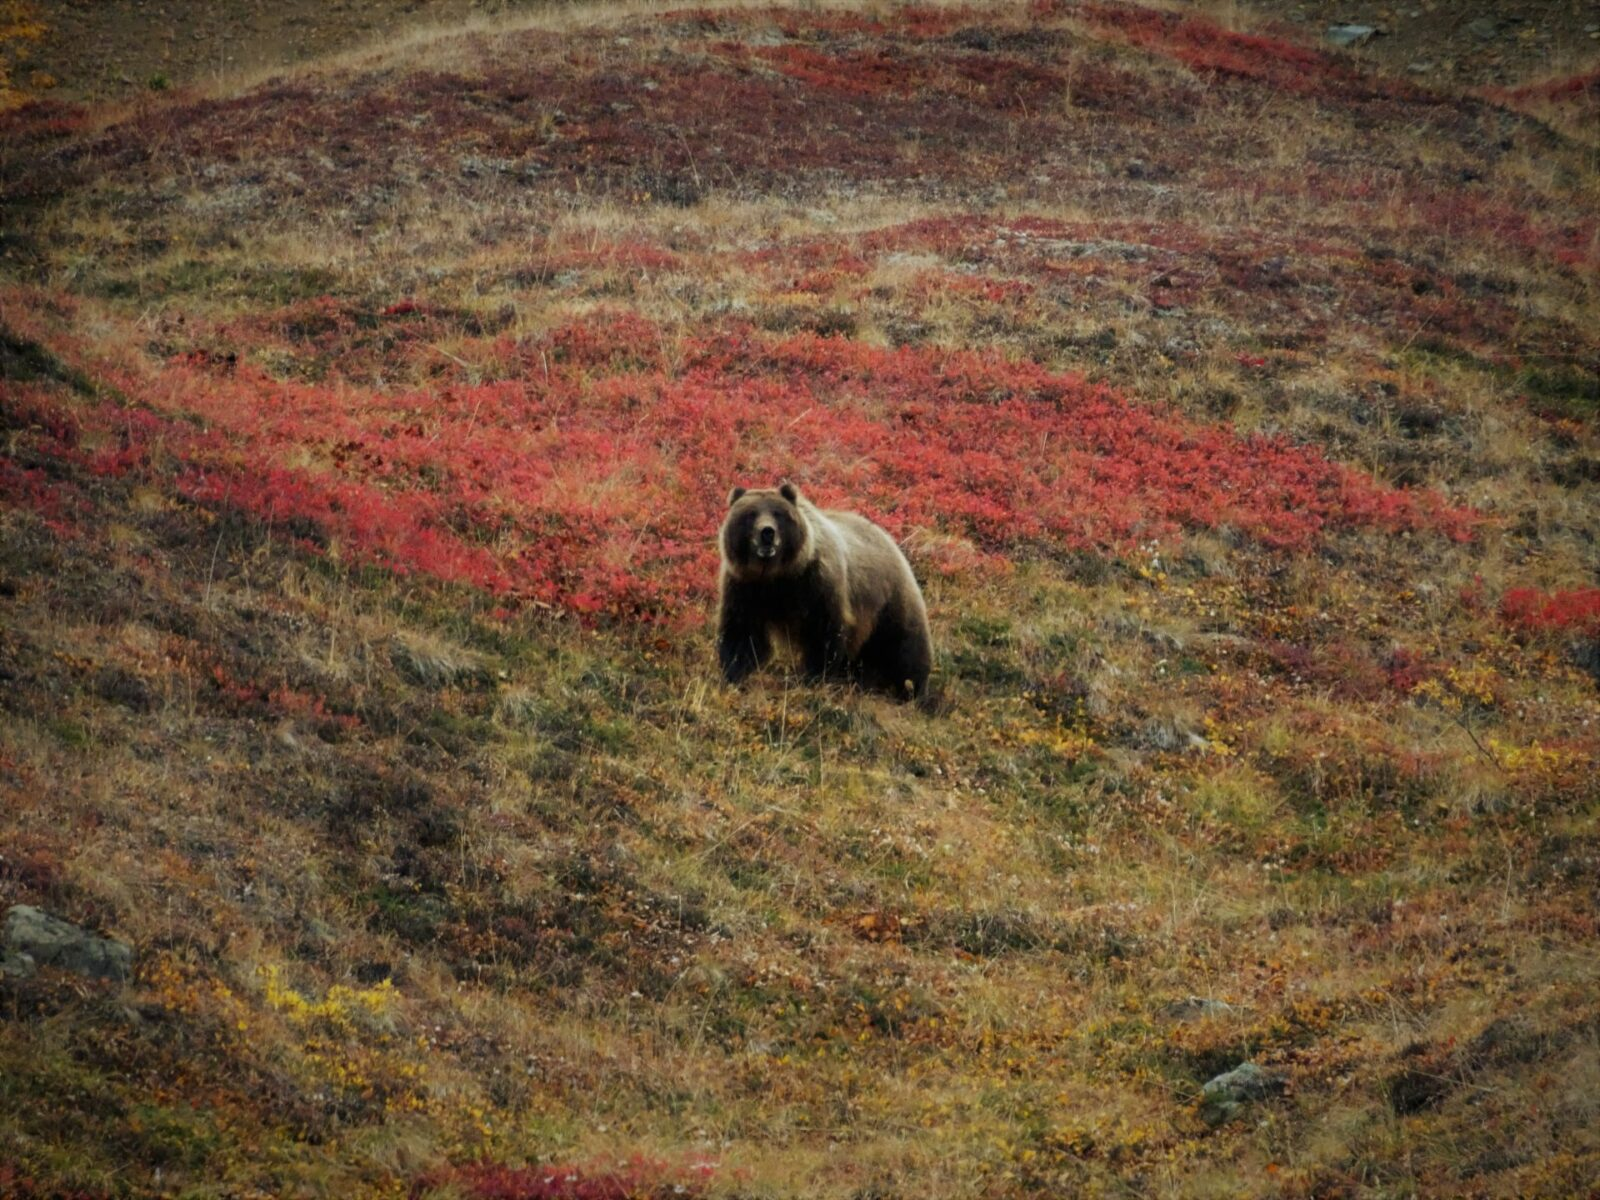 A grizzly bear in a field of fall color on one of the best day trip tours in alaska, the bus tour of denali national park